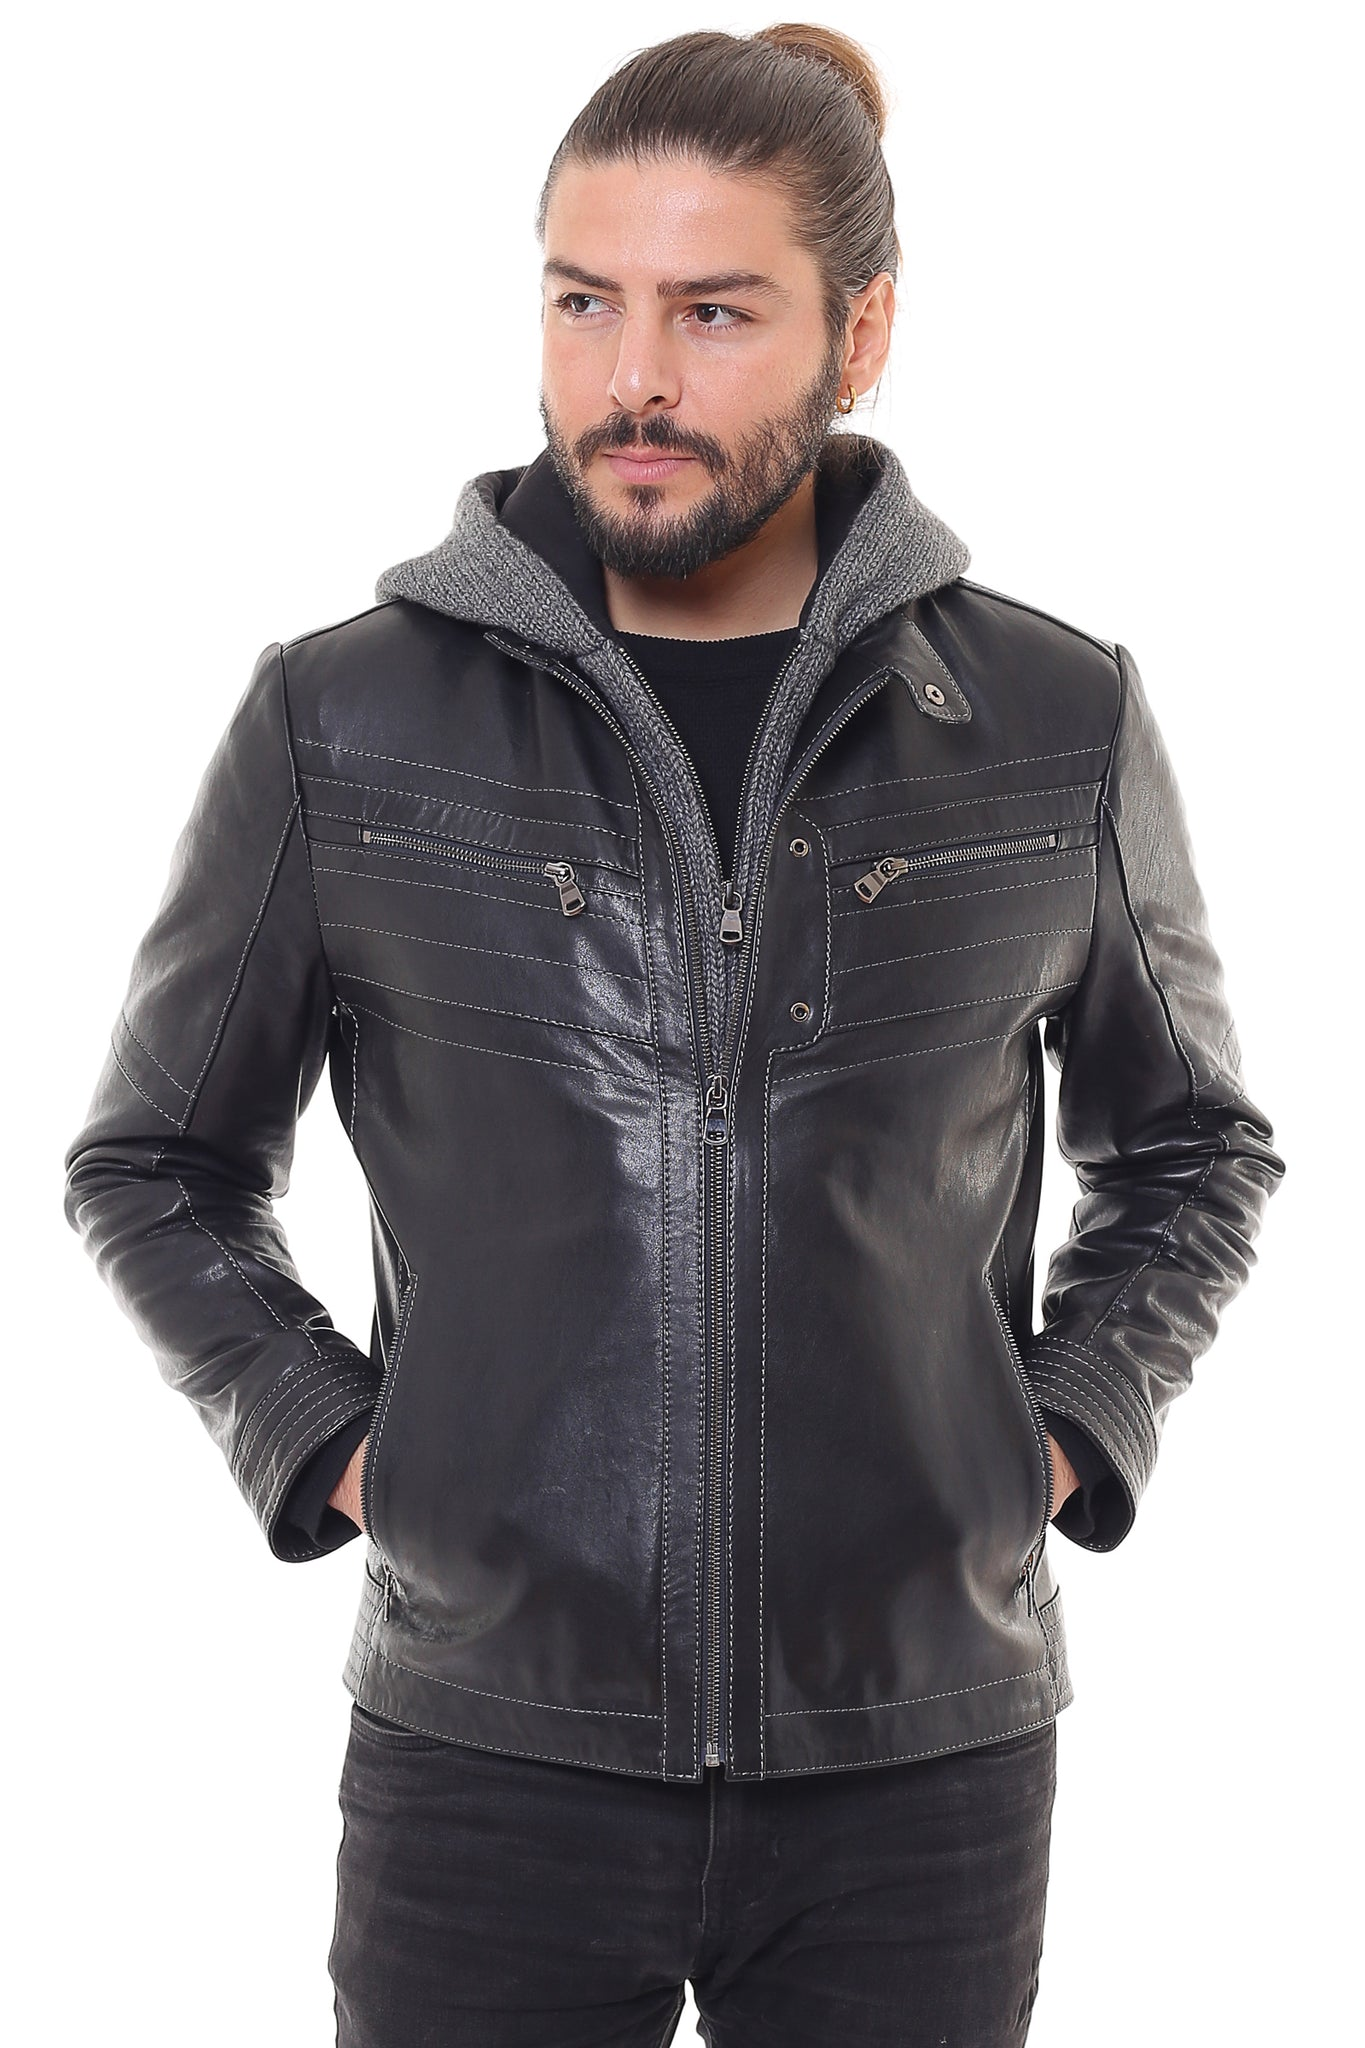 Austere Leather Jacket